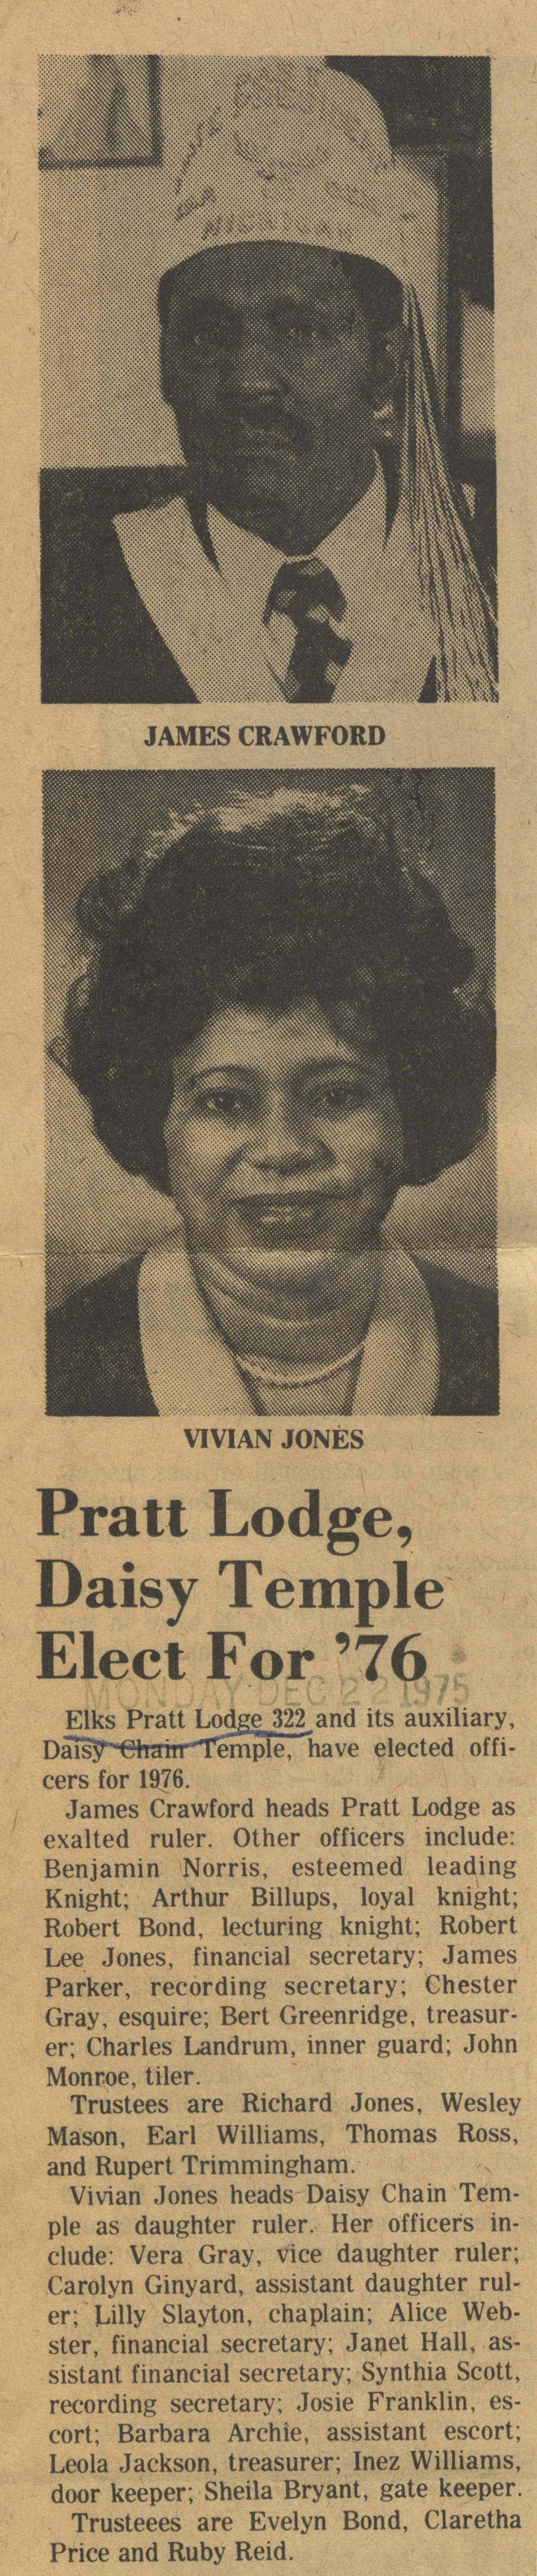 Pratt Lodge, Daisy Temple Elect For '76 image